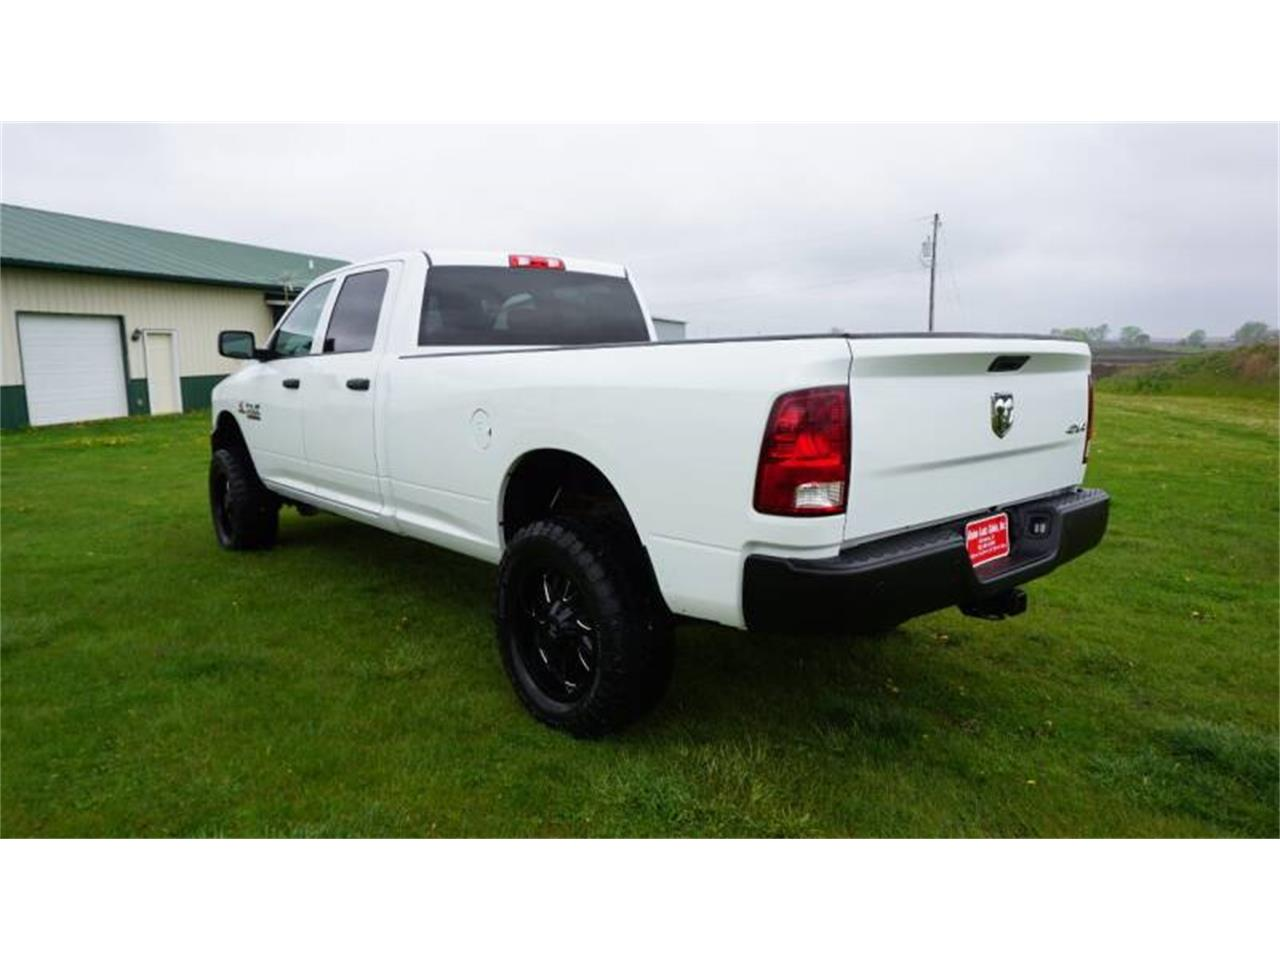 2017 Dodge Ram 2500 (CC-1350477) for sale in Clarence, Iowa